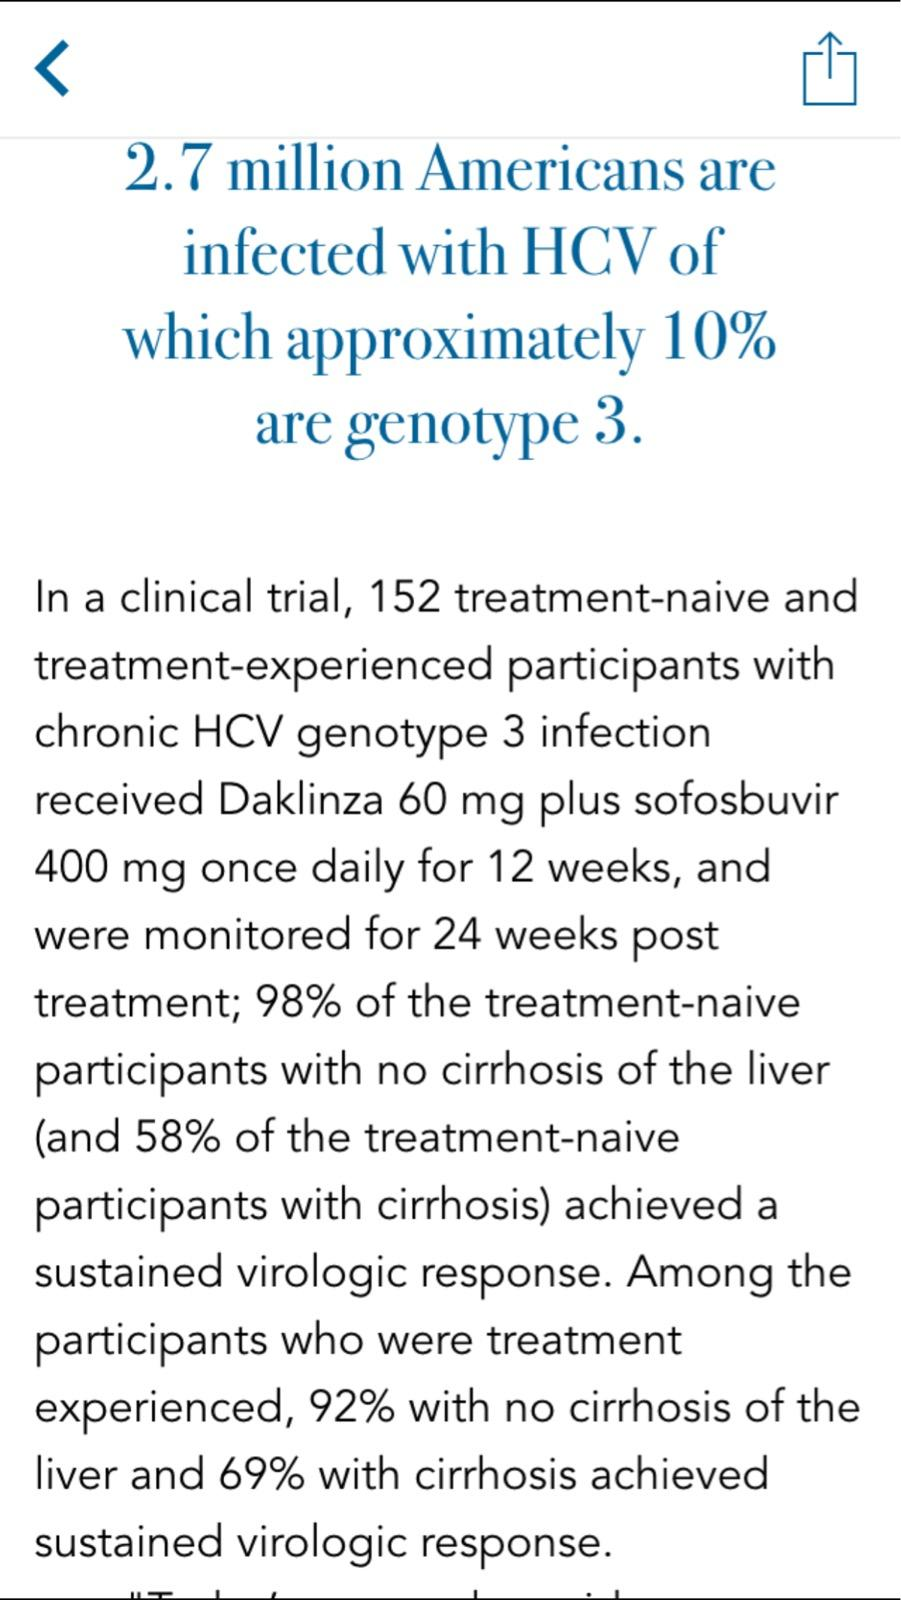 Machine generated alternative text: 2.7 million Americans are infected with HCV of which approximately 10% are genotype 3. In a clinical trial, 152 treatment-naive and treatment-experienced participants with chronic HCV genotype 3 infection received Daklinza 60 mg plus sofosbuvir 400 mg once daily for 12 weeks, and were monitored for 24 weeks post treatment; 98% of the treatment-naive participants with no cirrhosis of the liver (and 58% of the treatment-naive participants with cirrhosis) achieved a sustained virologic response. Among the participants who were treatment experienced, 92% with no cirrhosis of the liver and 69% with cirrhosis achieved sustained virologic response.